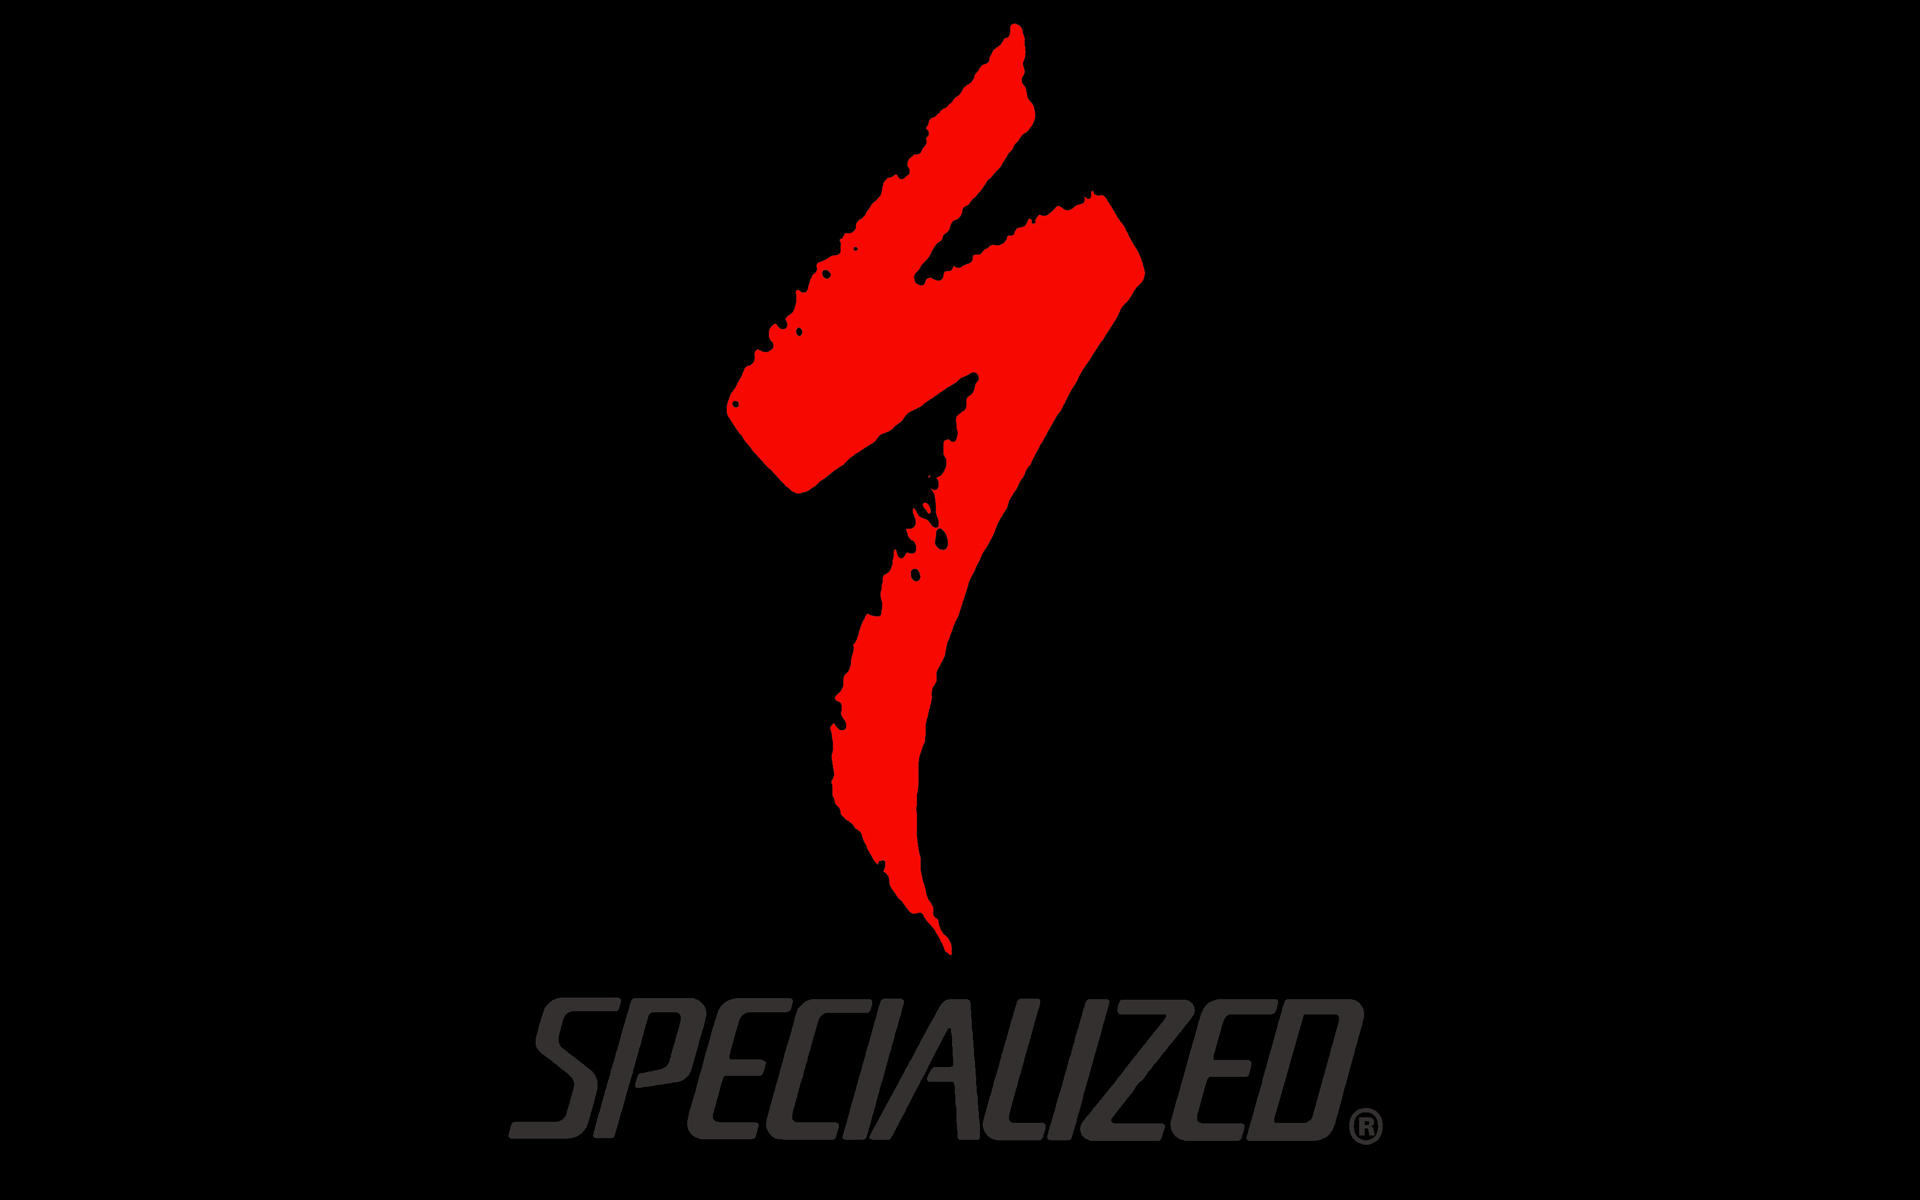 Specialized by soyd on DeviantArt